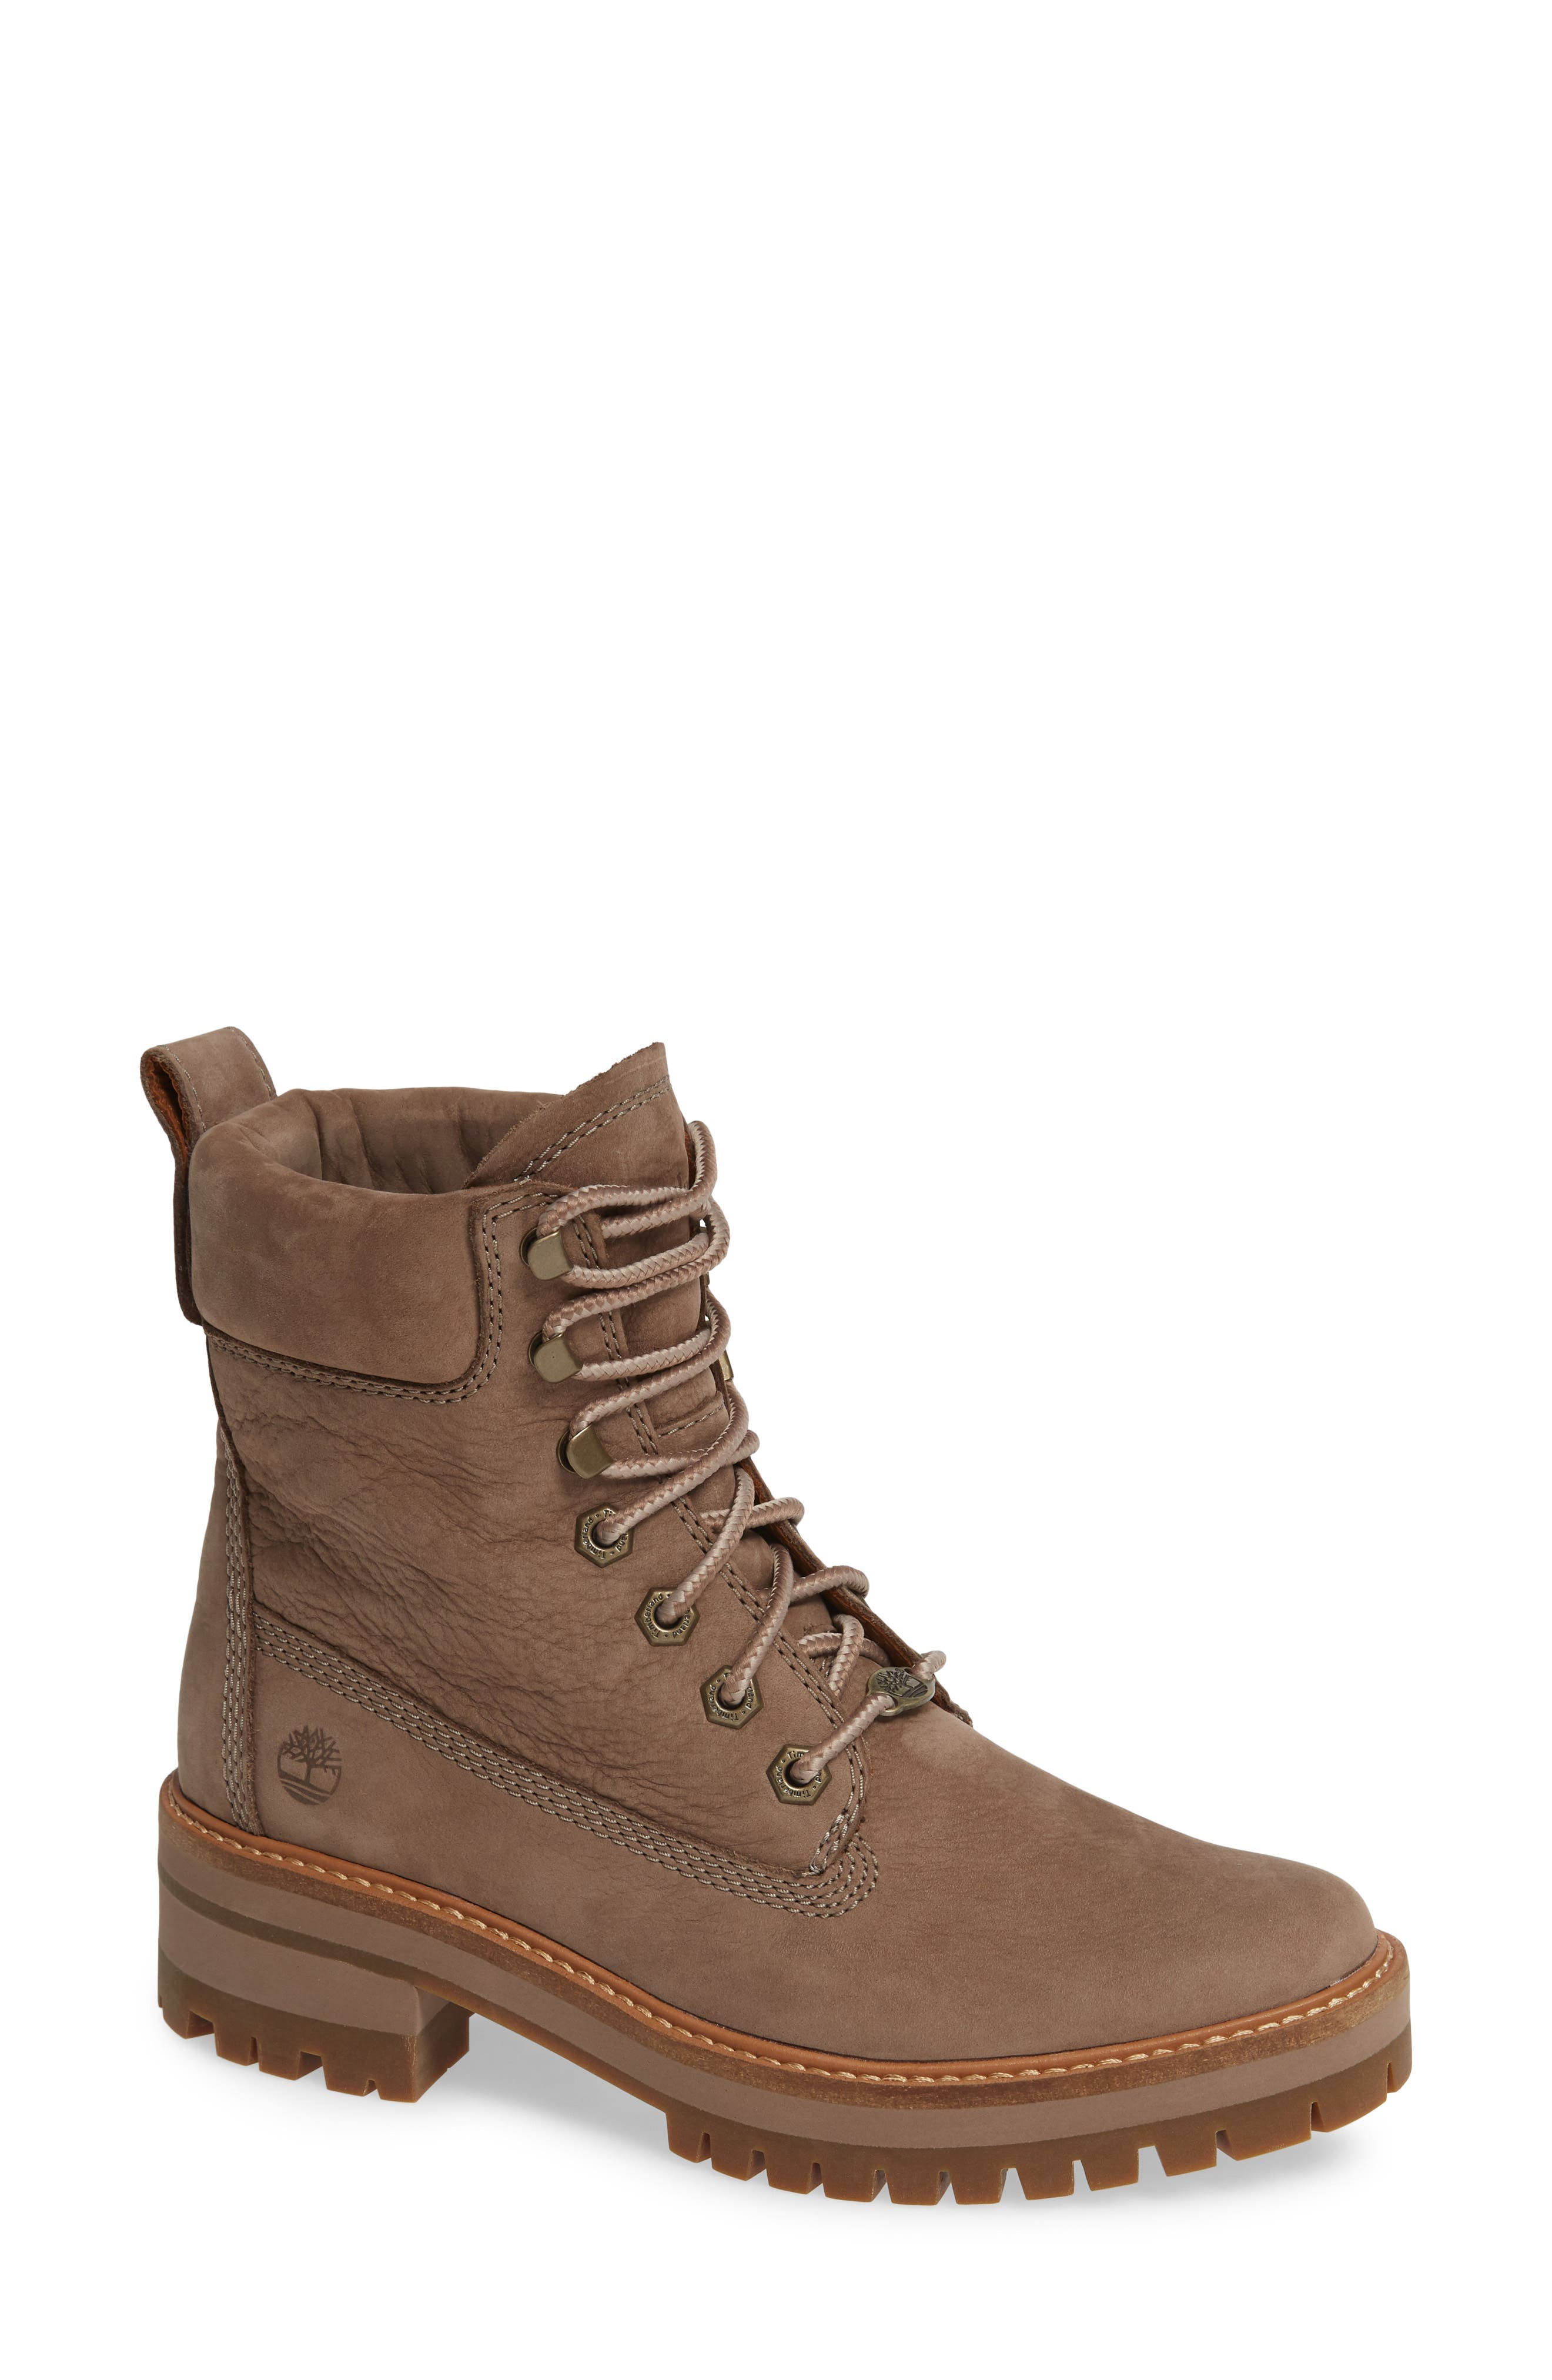 TIMBERLAND, Courmayeur Valley Water Resistant Hiking Boot, Main thumbnail 1, color, TAUPE GREY NUBUCK